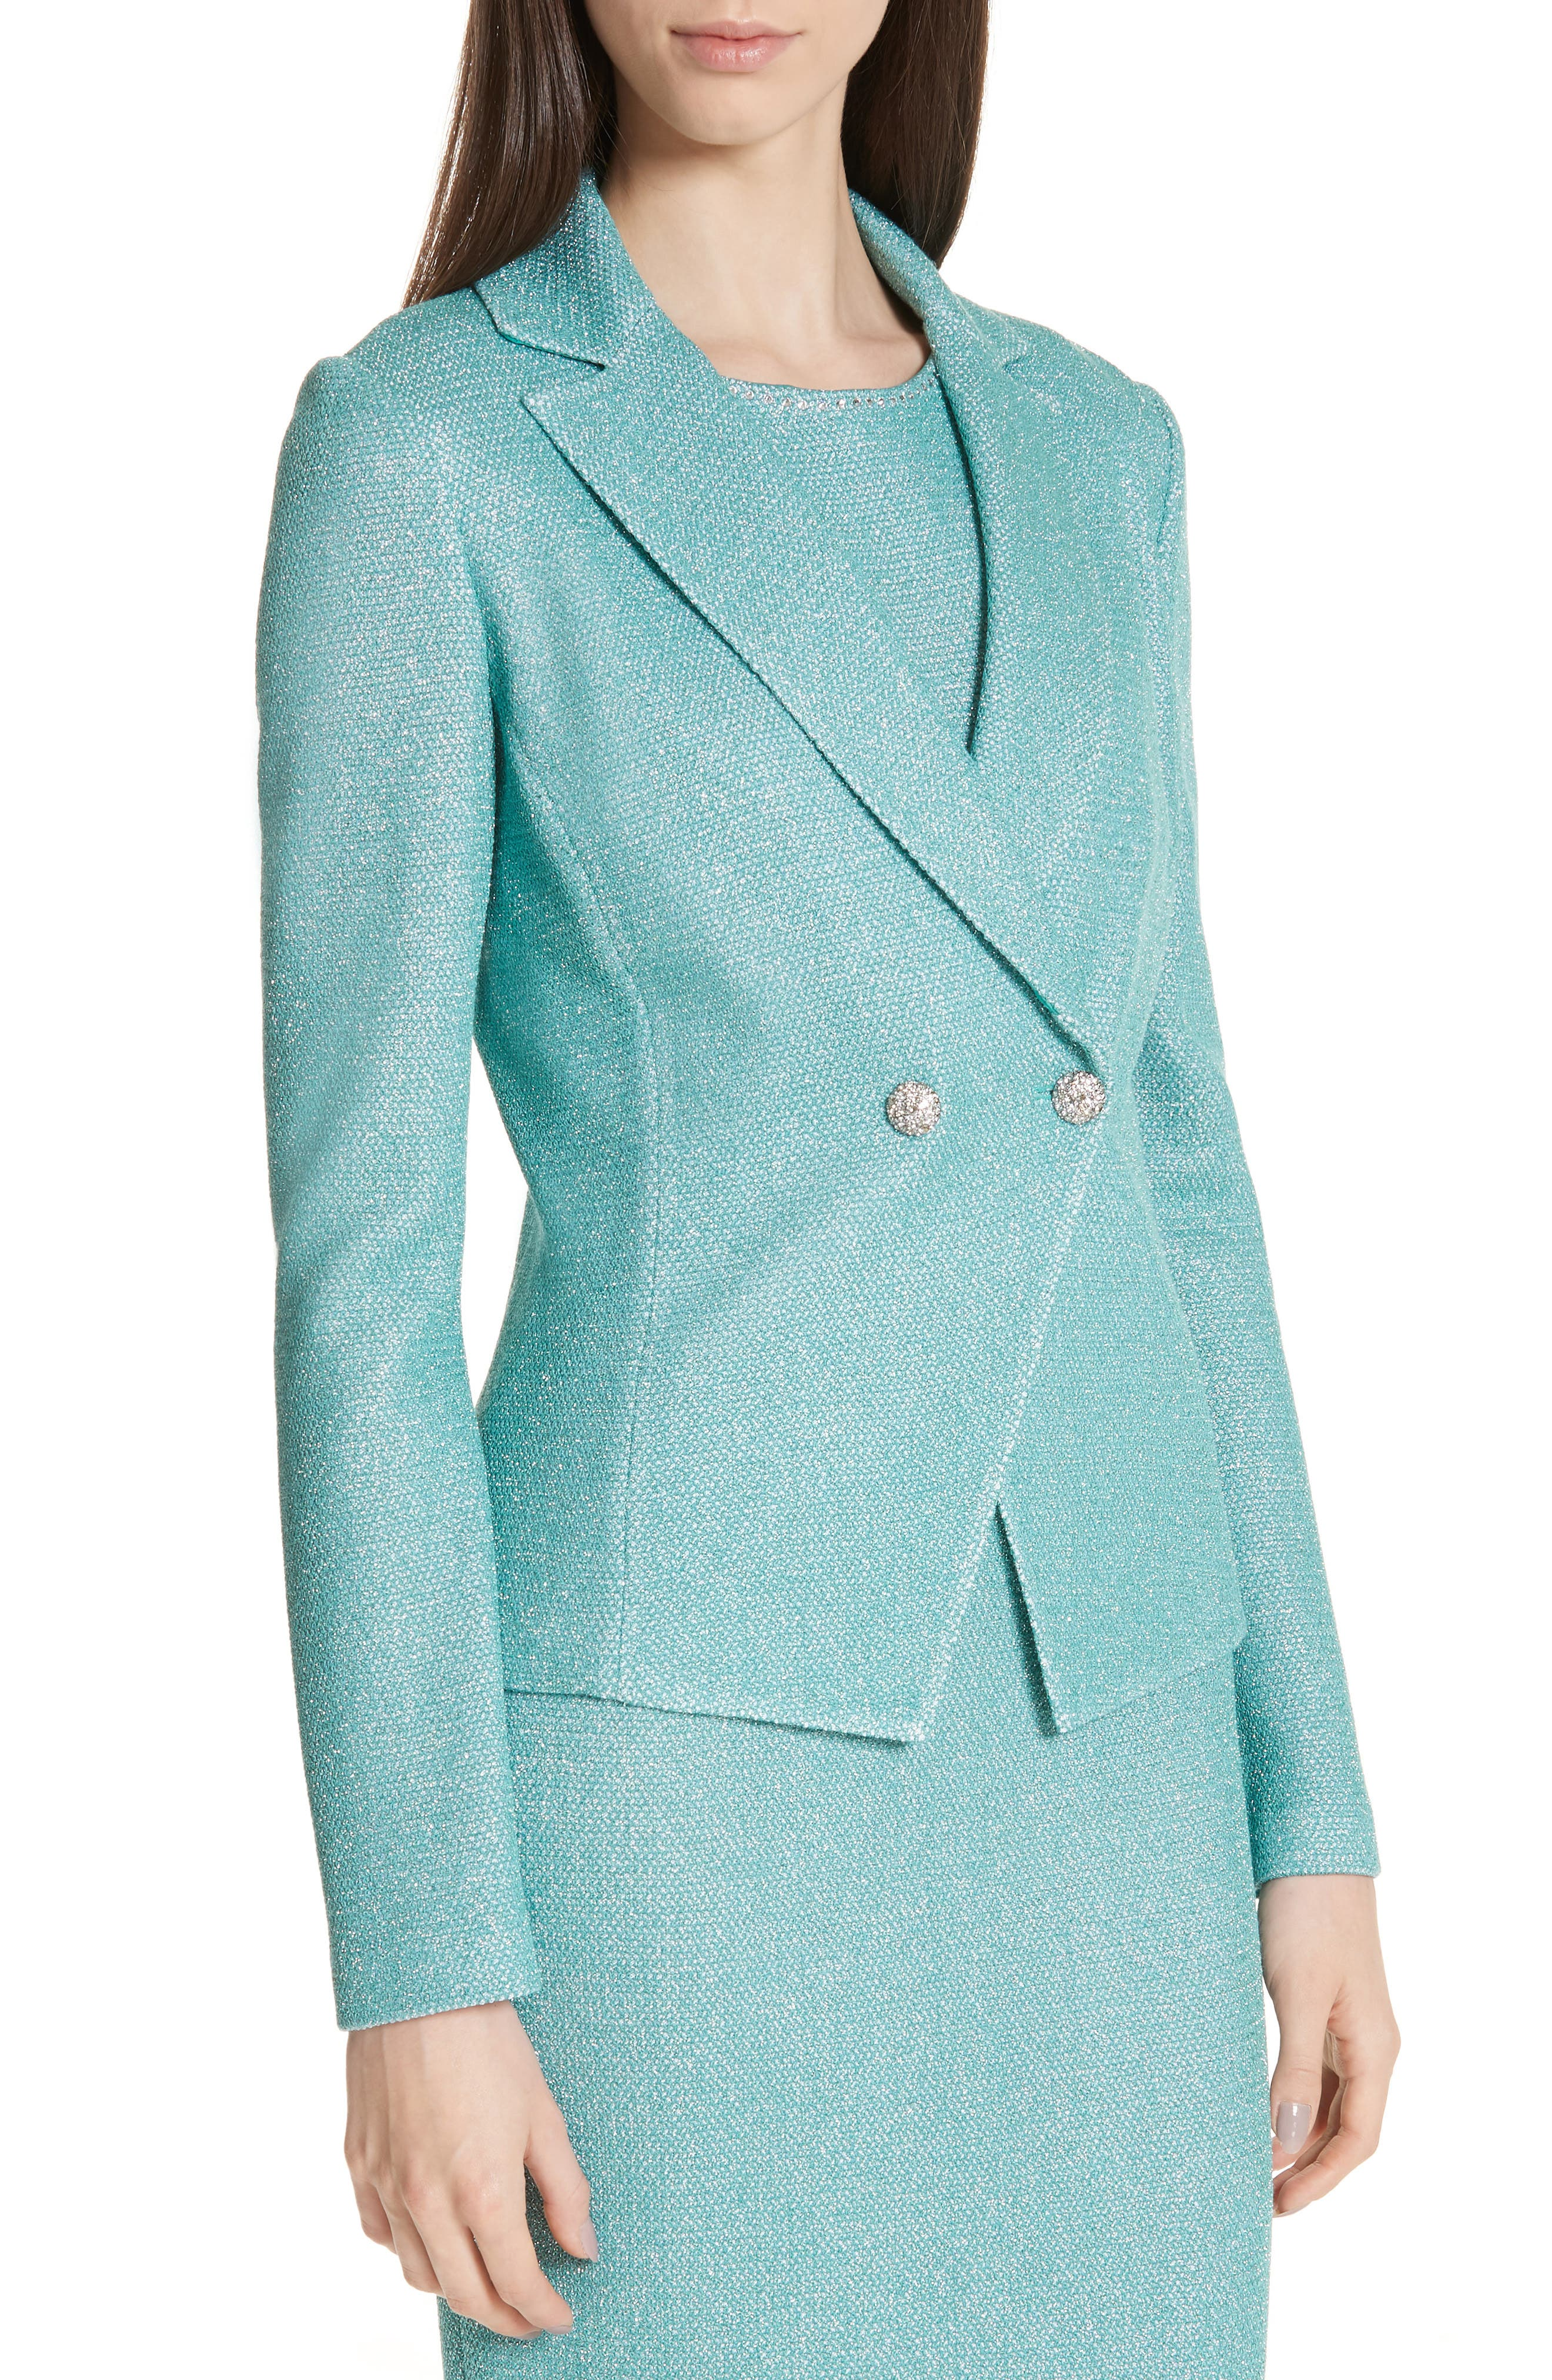 ST. JOHN COLLECTION, Bailey Knit Double Breasted Blazer, Alternate thumbnail 5, color, LAGOON